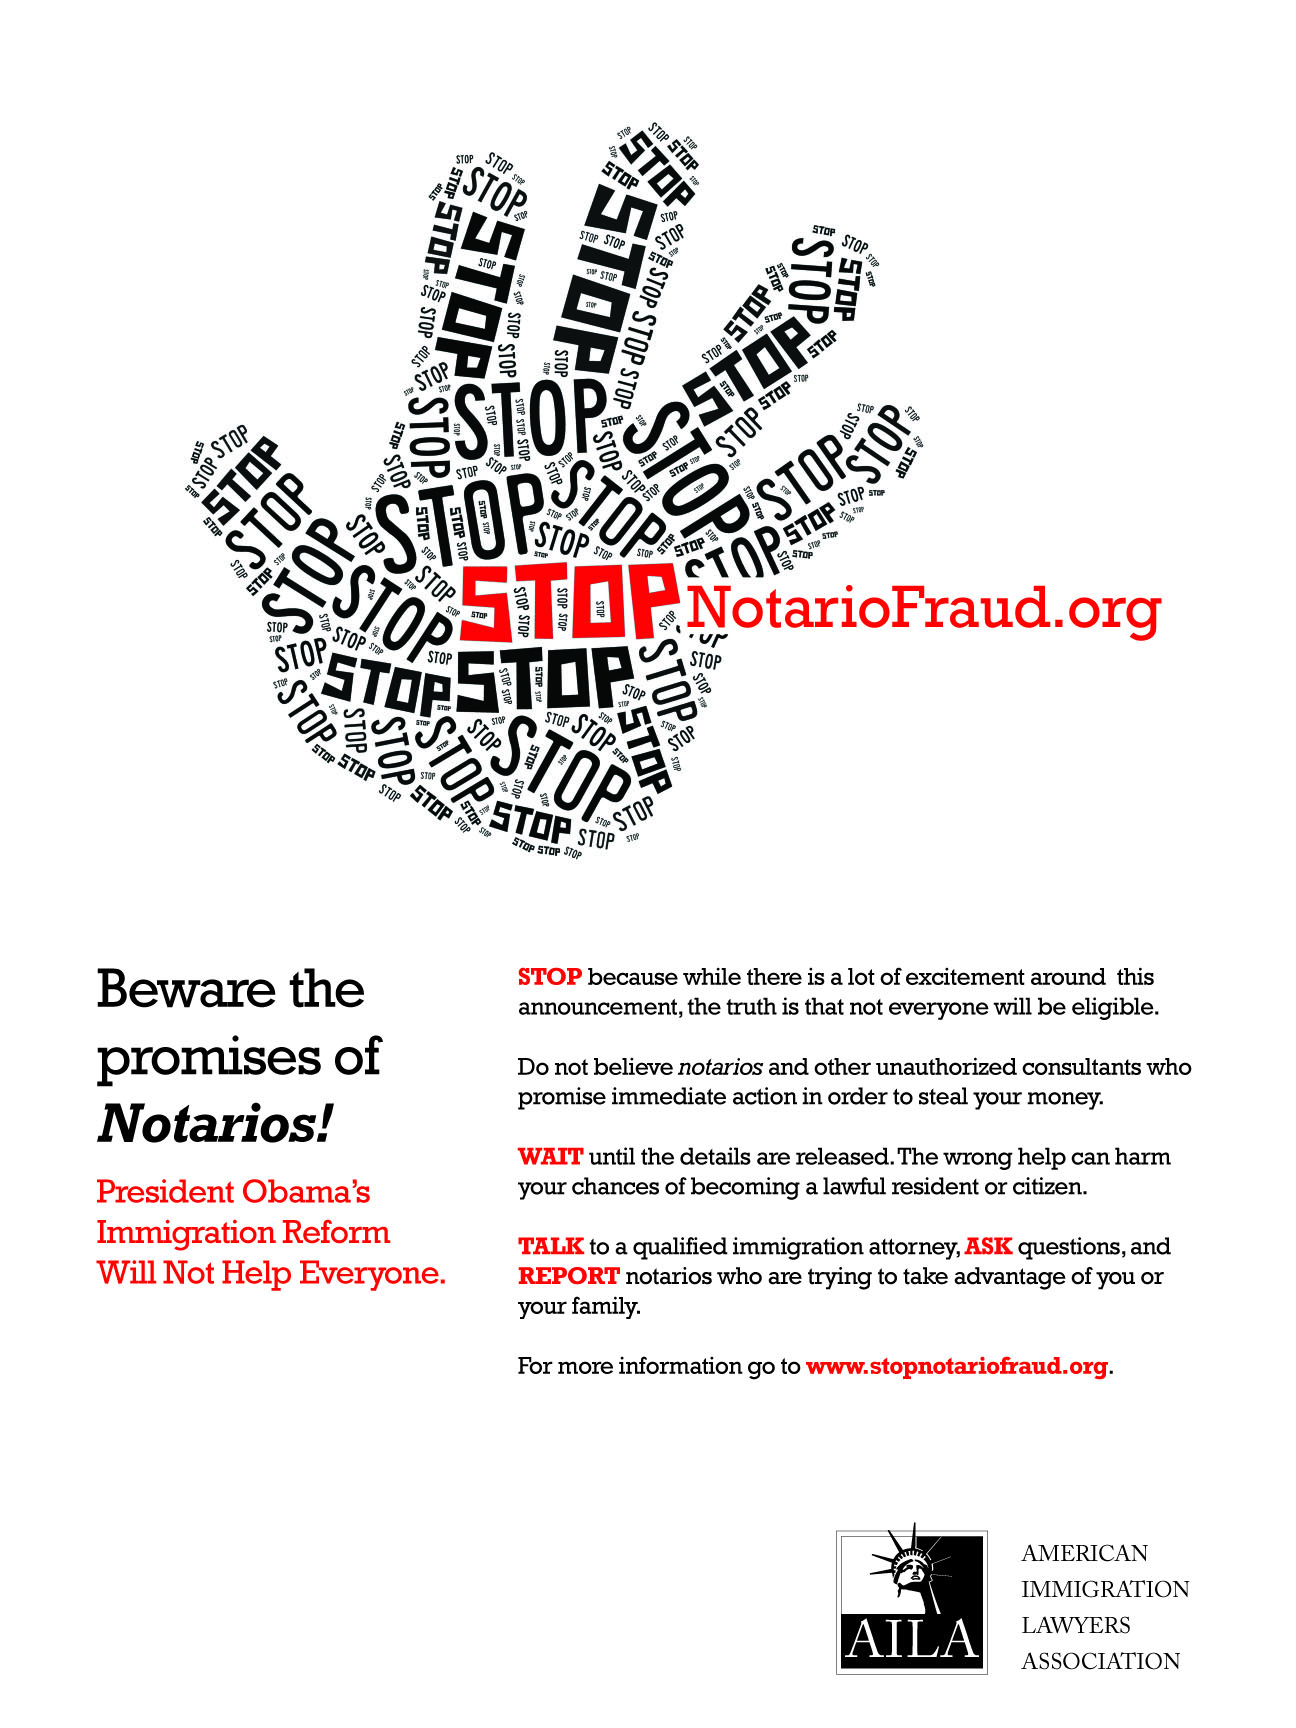 Watch out for Scammers! Notario Fraud can Ruin Your Immigration Chances and your future